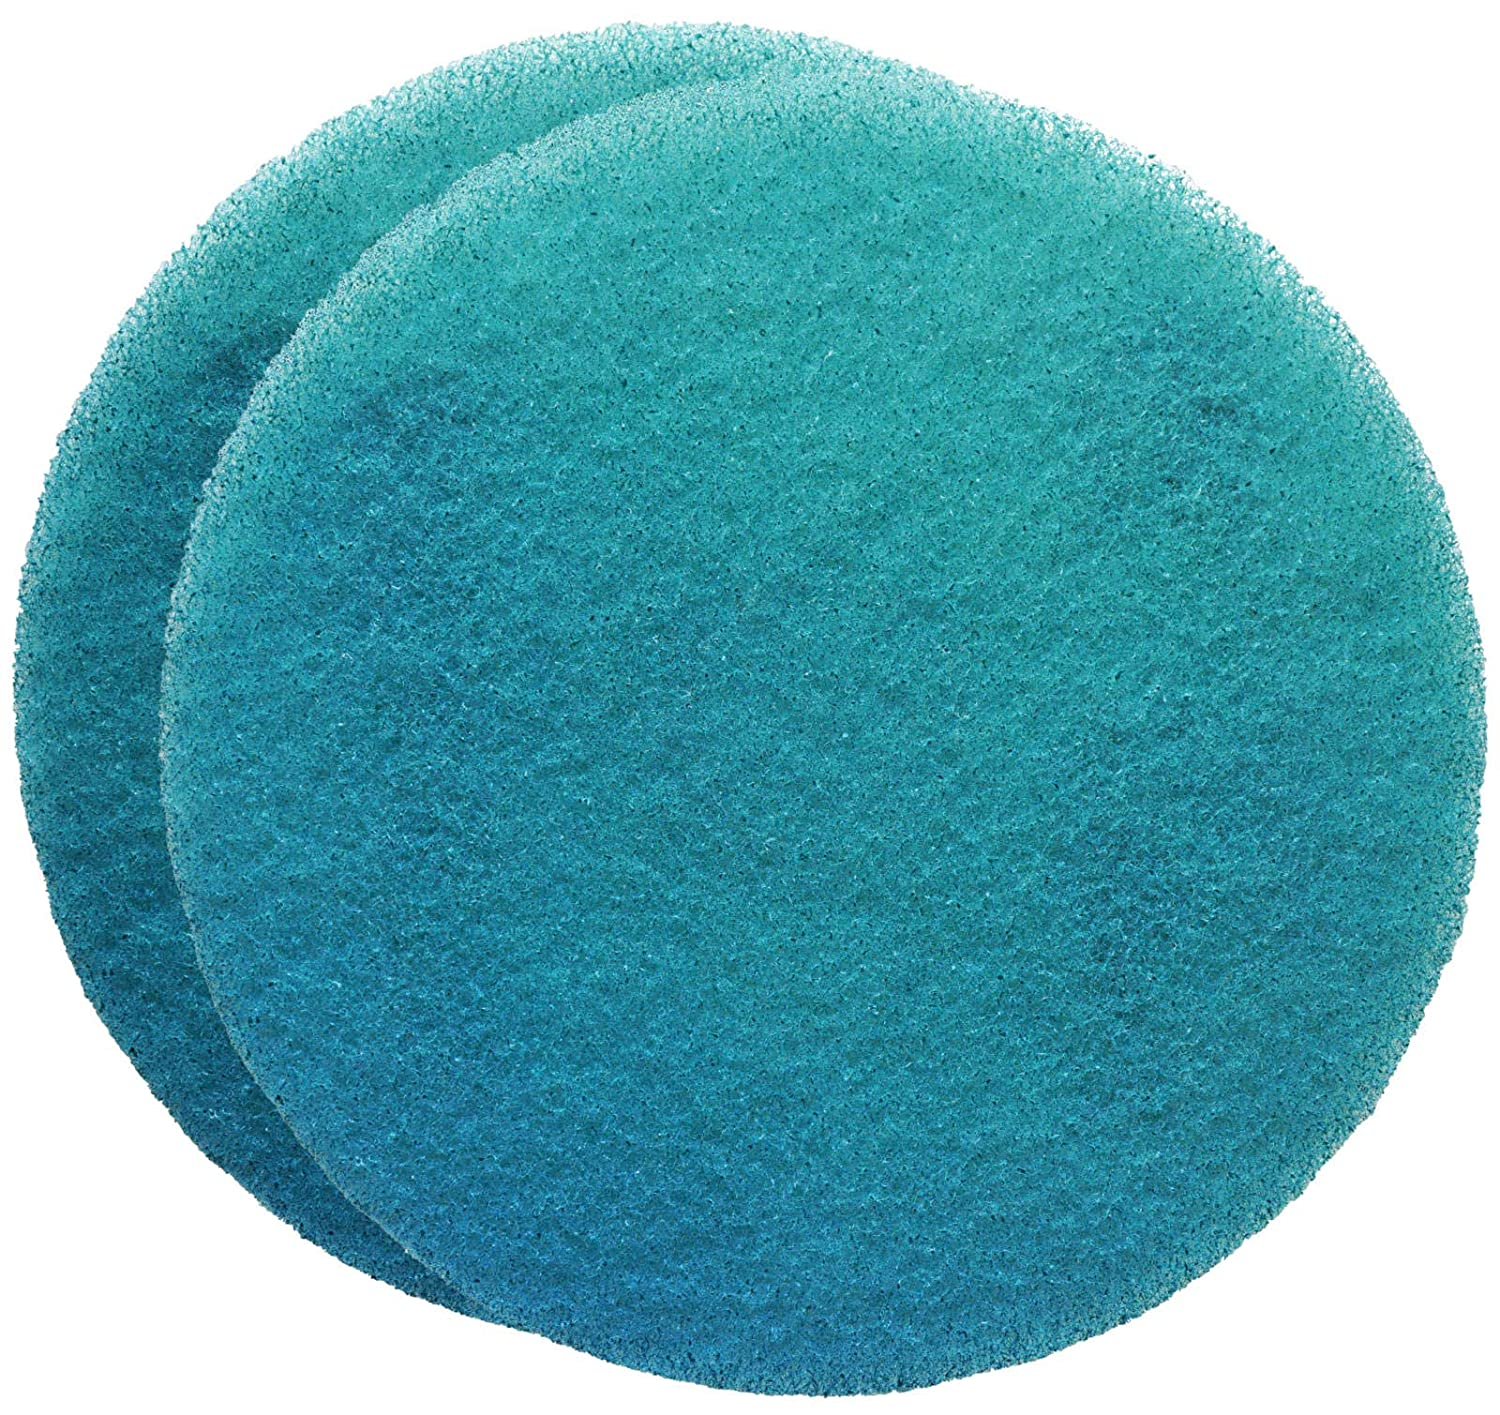 FLEXIS KGS Floor Cleaning polishing Pads 800 13 豪華な - grit NEW ARRIVAL B inch